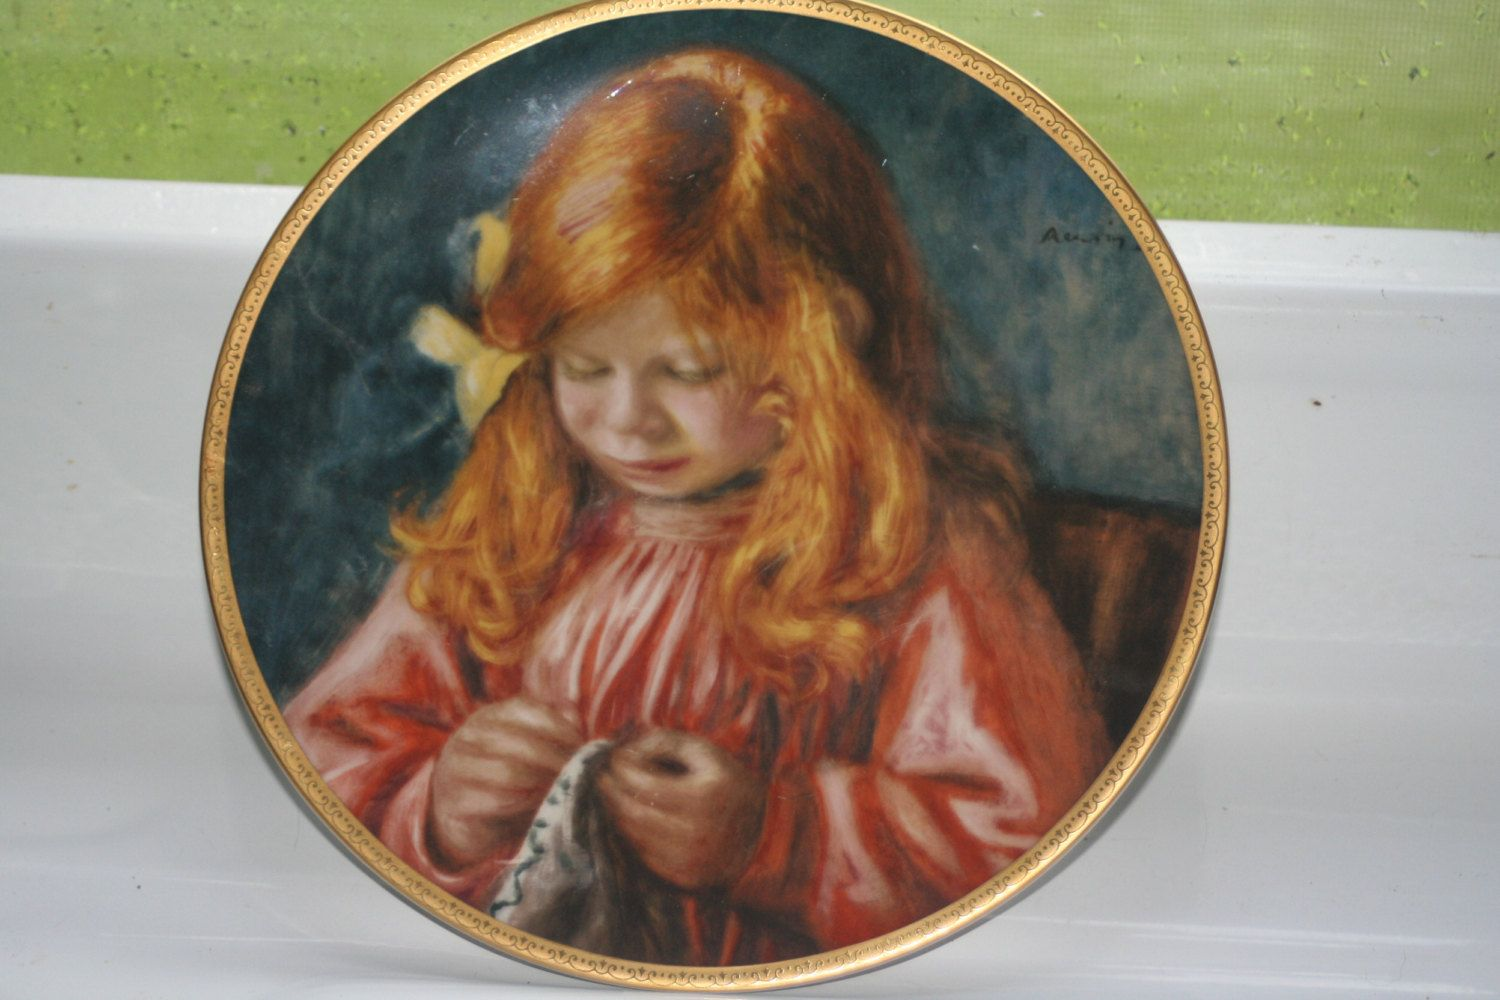 child of renoir collector plate collectible vintage home decor child of renoir collector plate collectible vintage home decor castawayacres by castawayacres on